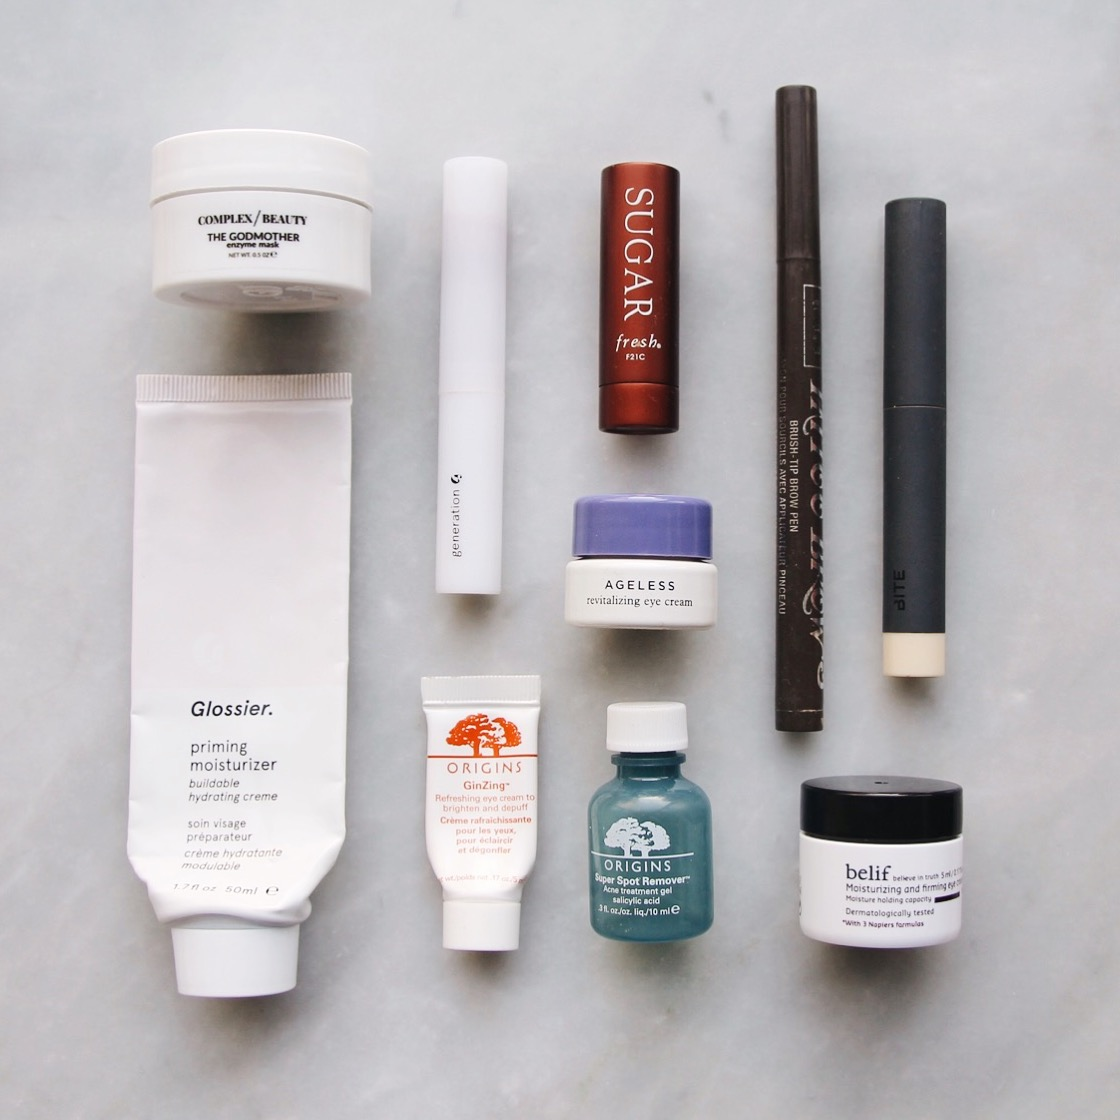 Products I've Finished: Empties, empties, finished products, empty beauty products, products I've finished, glossier, complex beauty co, origins, belif, bite beauty, anastasia beverly hills, fresh sugar lips, tatcha